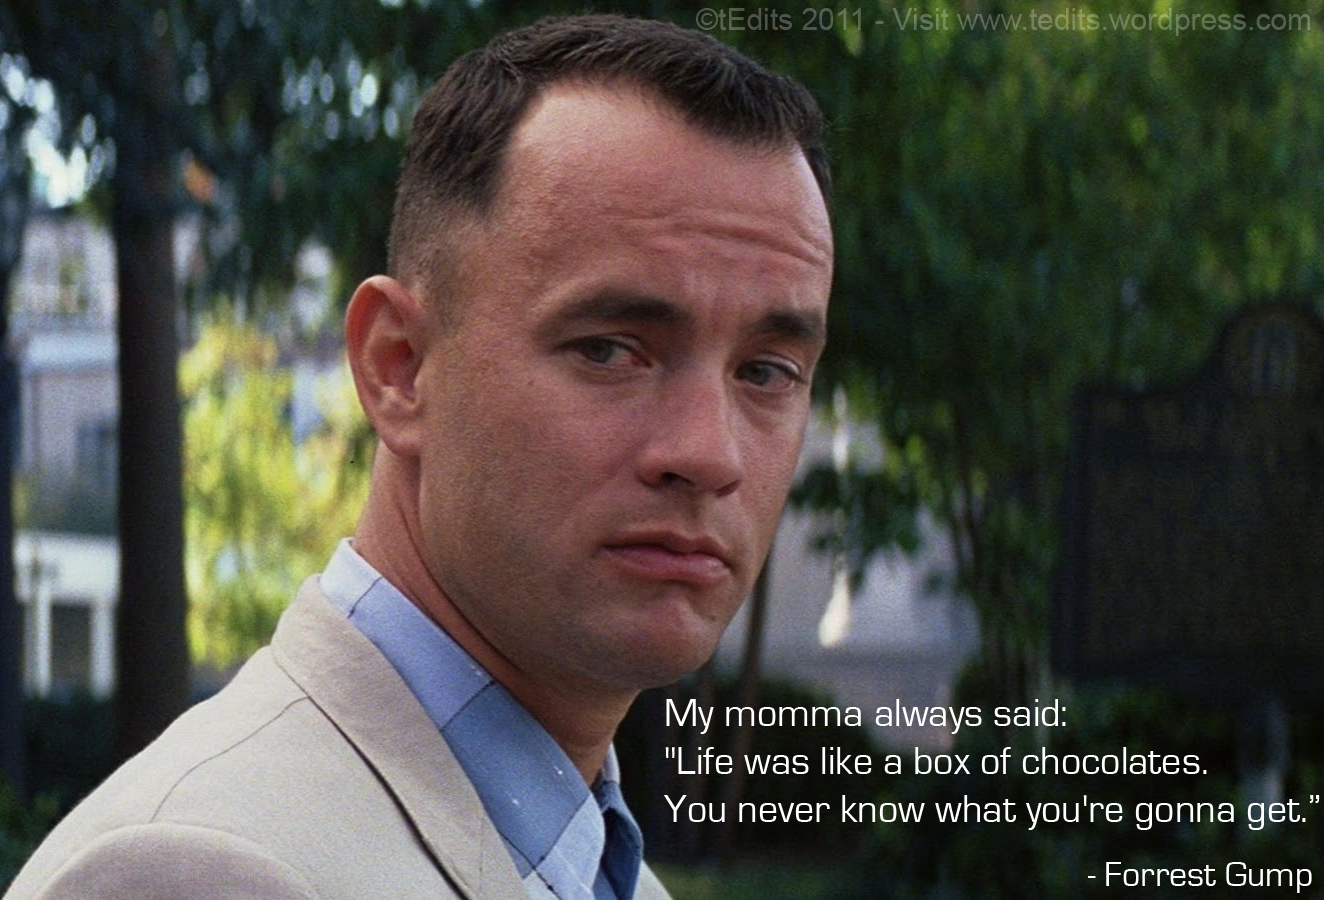 Forrest Gump Quotes Tumblr Images & Pictures - Becuo